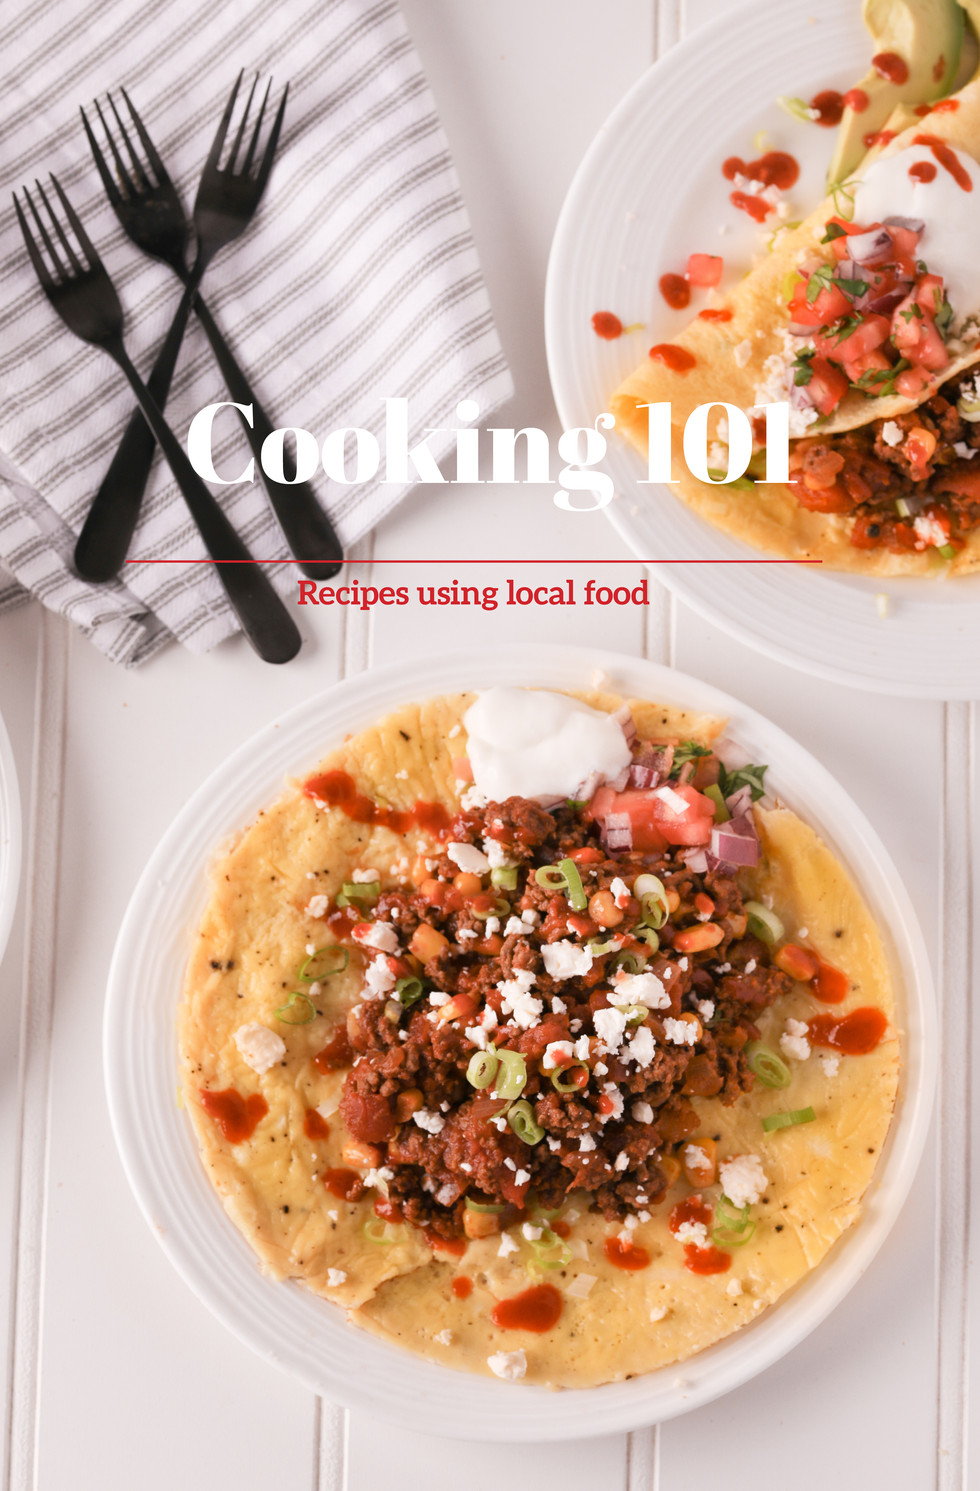 Cooking 101 Fall 2019 Booklet